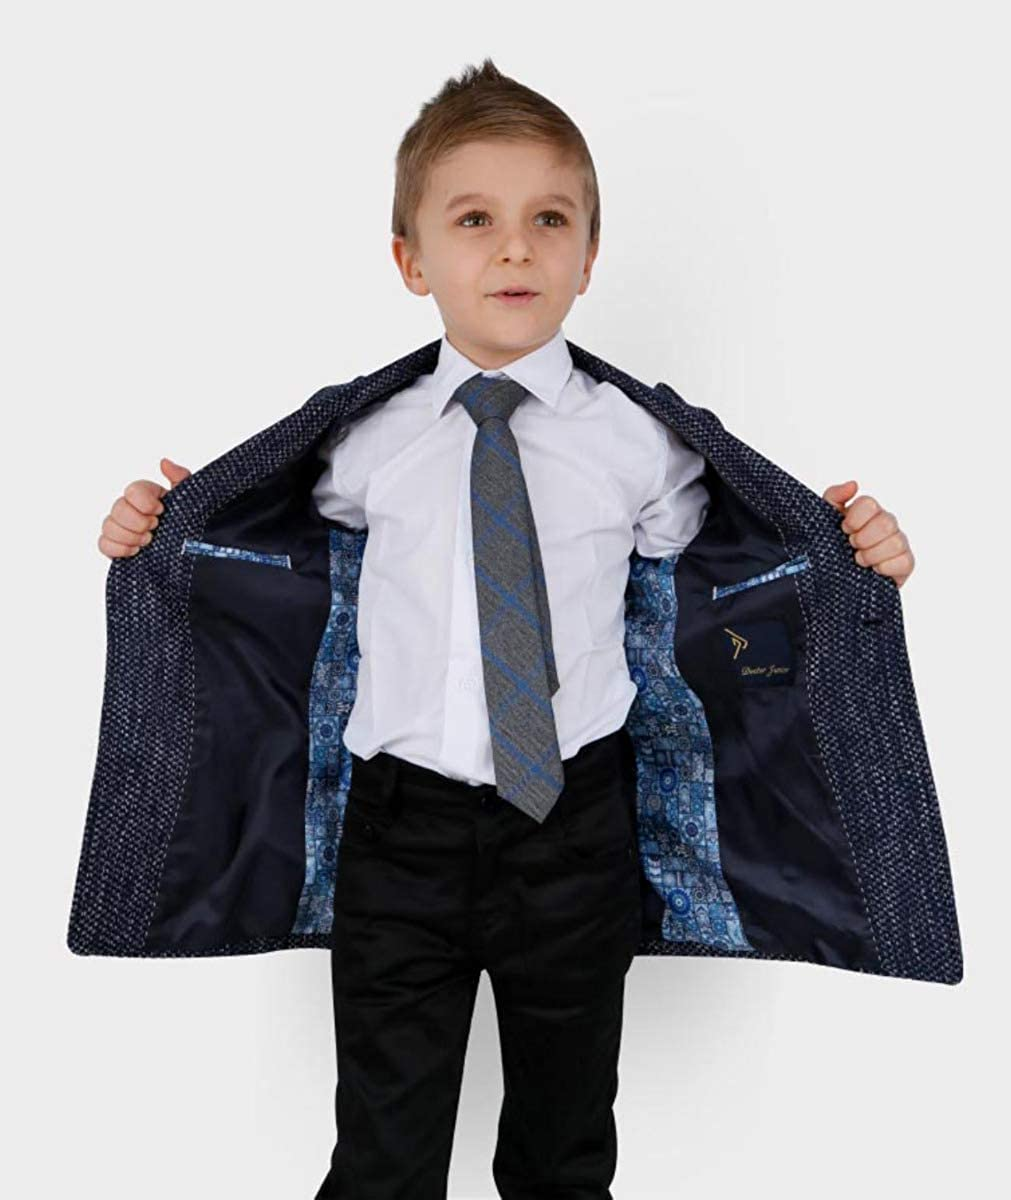 SIRRI Boys Tailored Fit Flecked Donegal Tweed Formal Dinner Overcoat Jackets